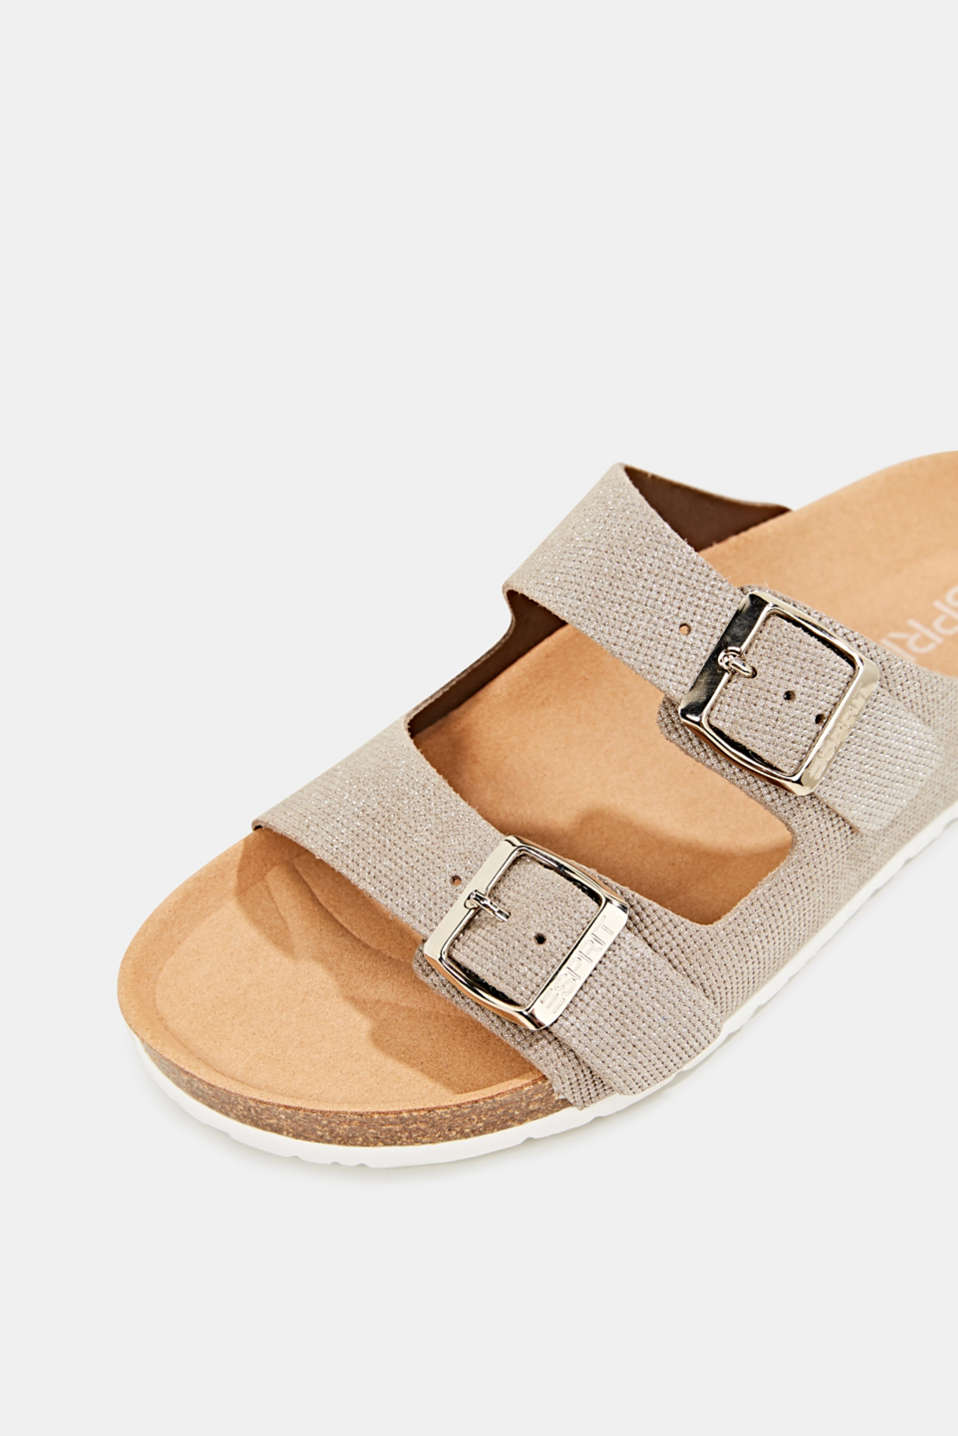 Leather mules with buckles, LIGHT GREY, detail image number 4